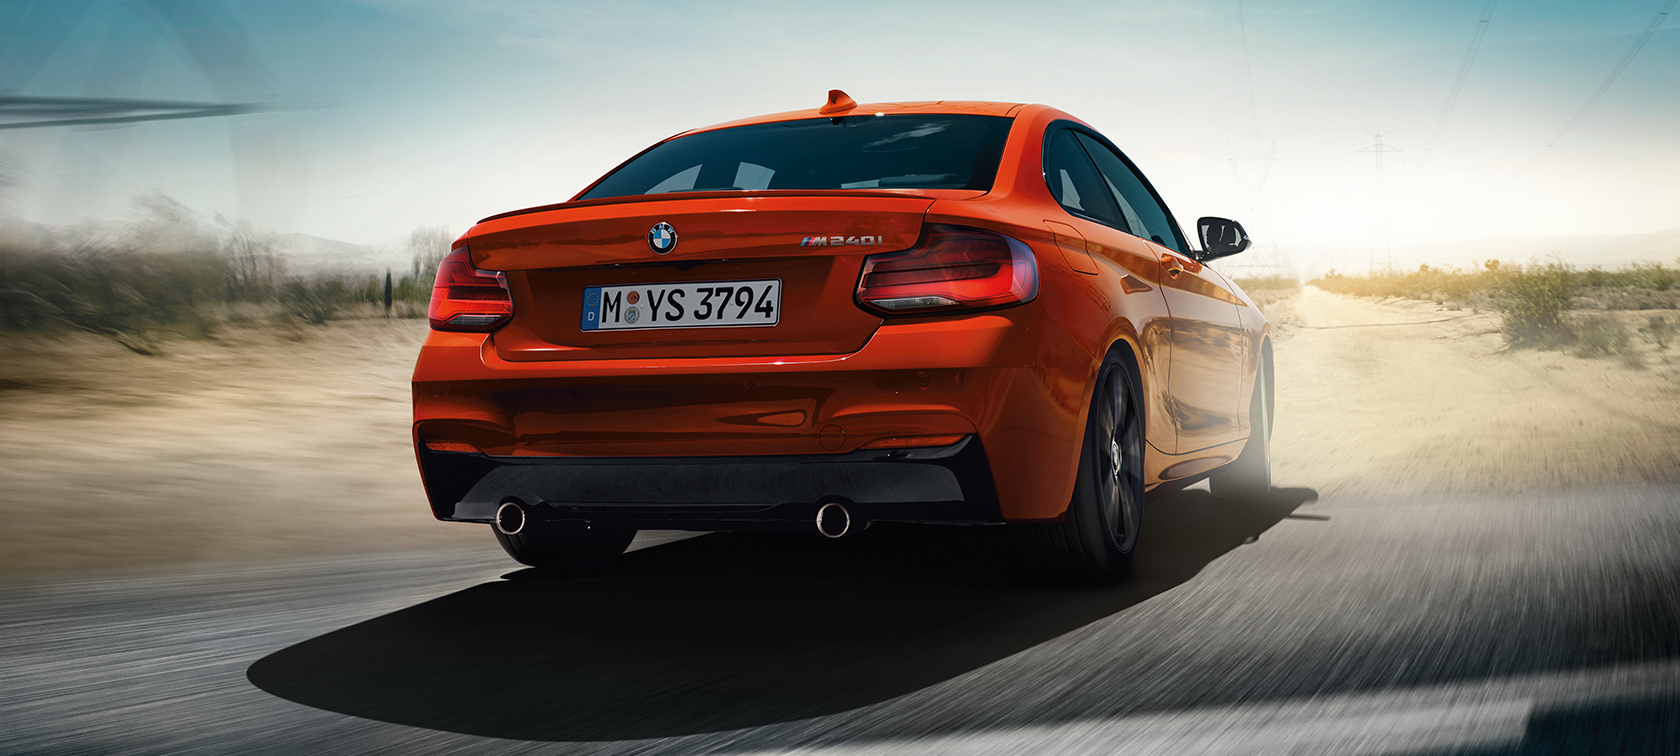 BMW 2 Series Coupé, Driving Dynamics